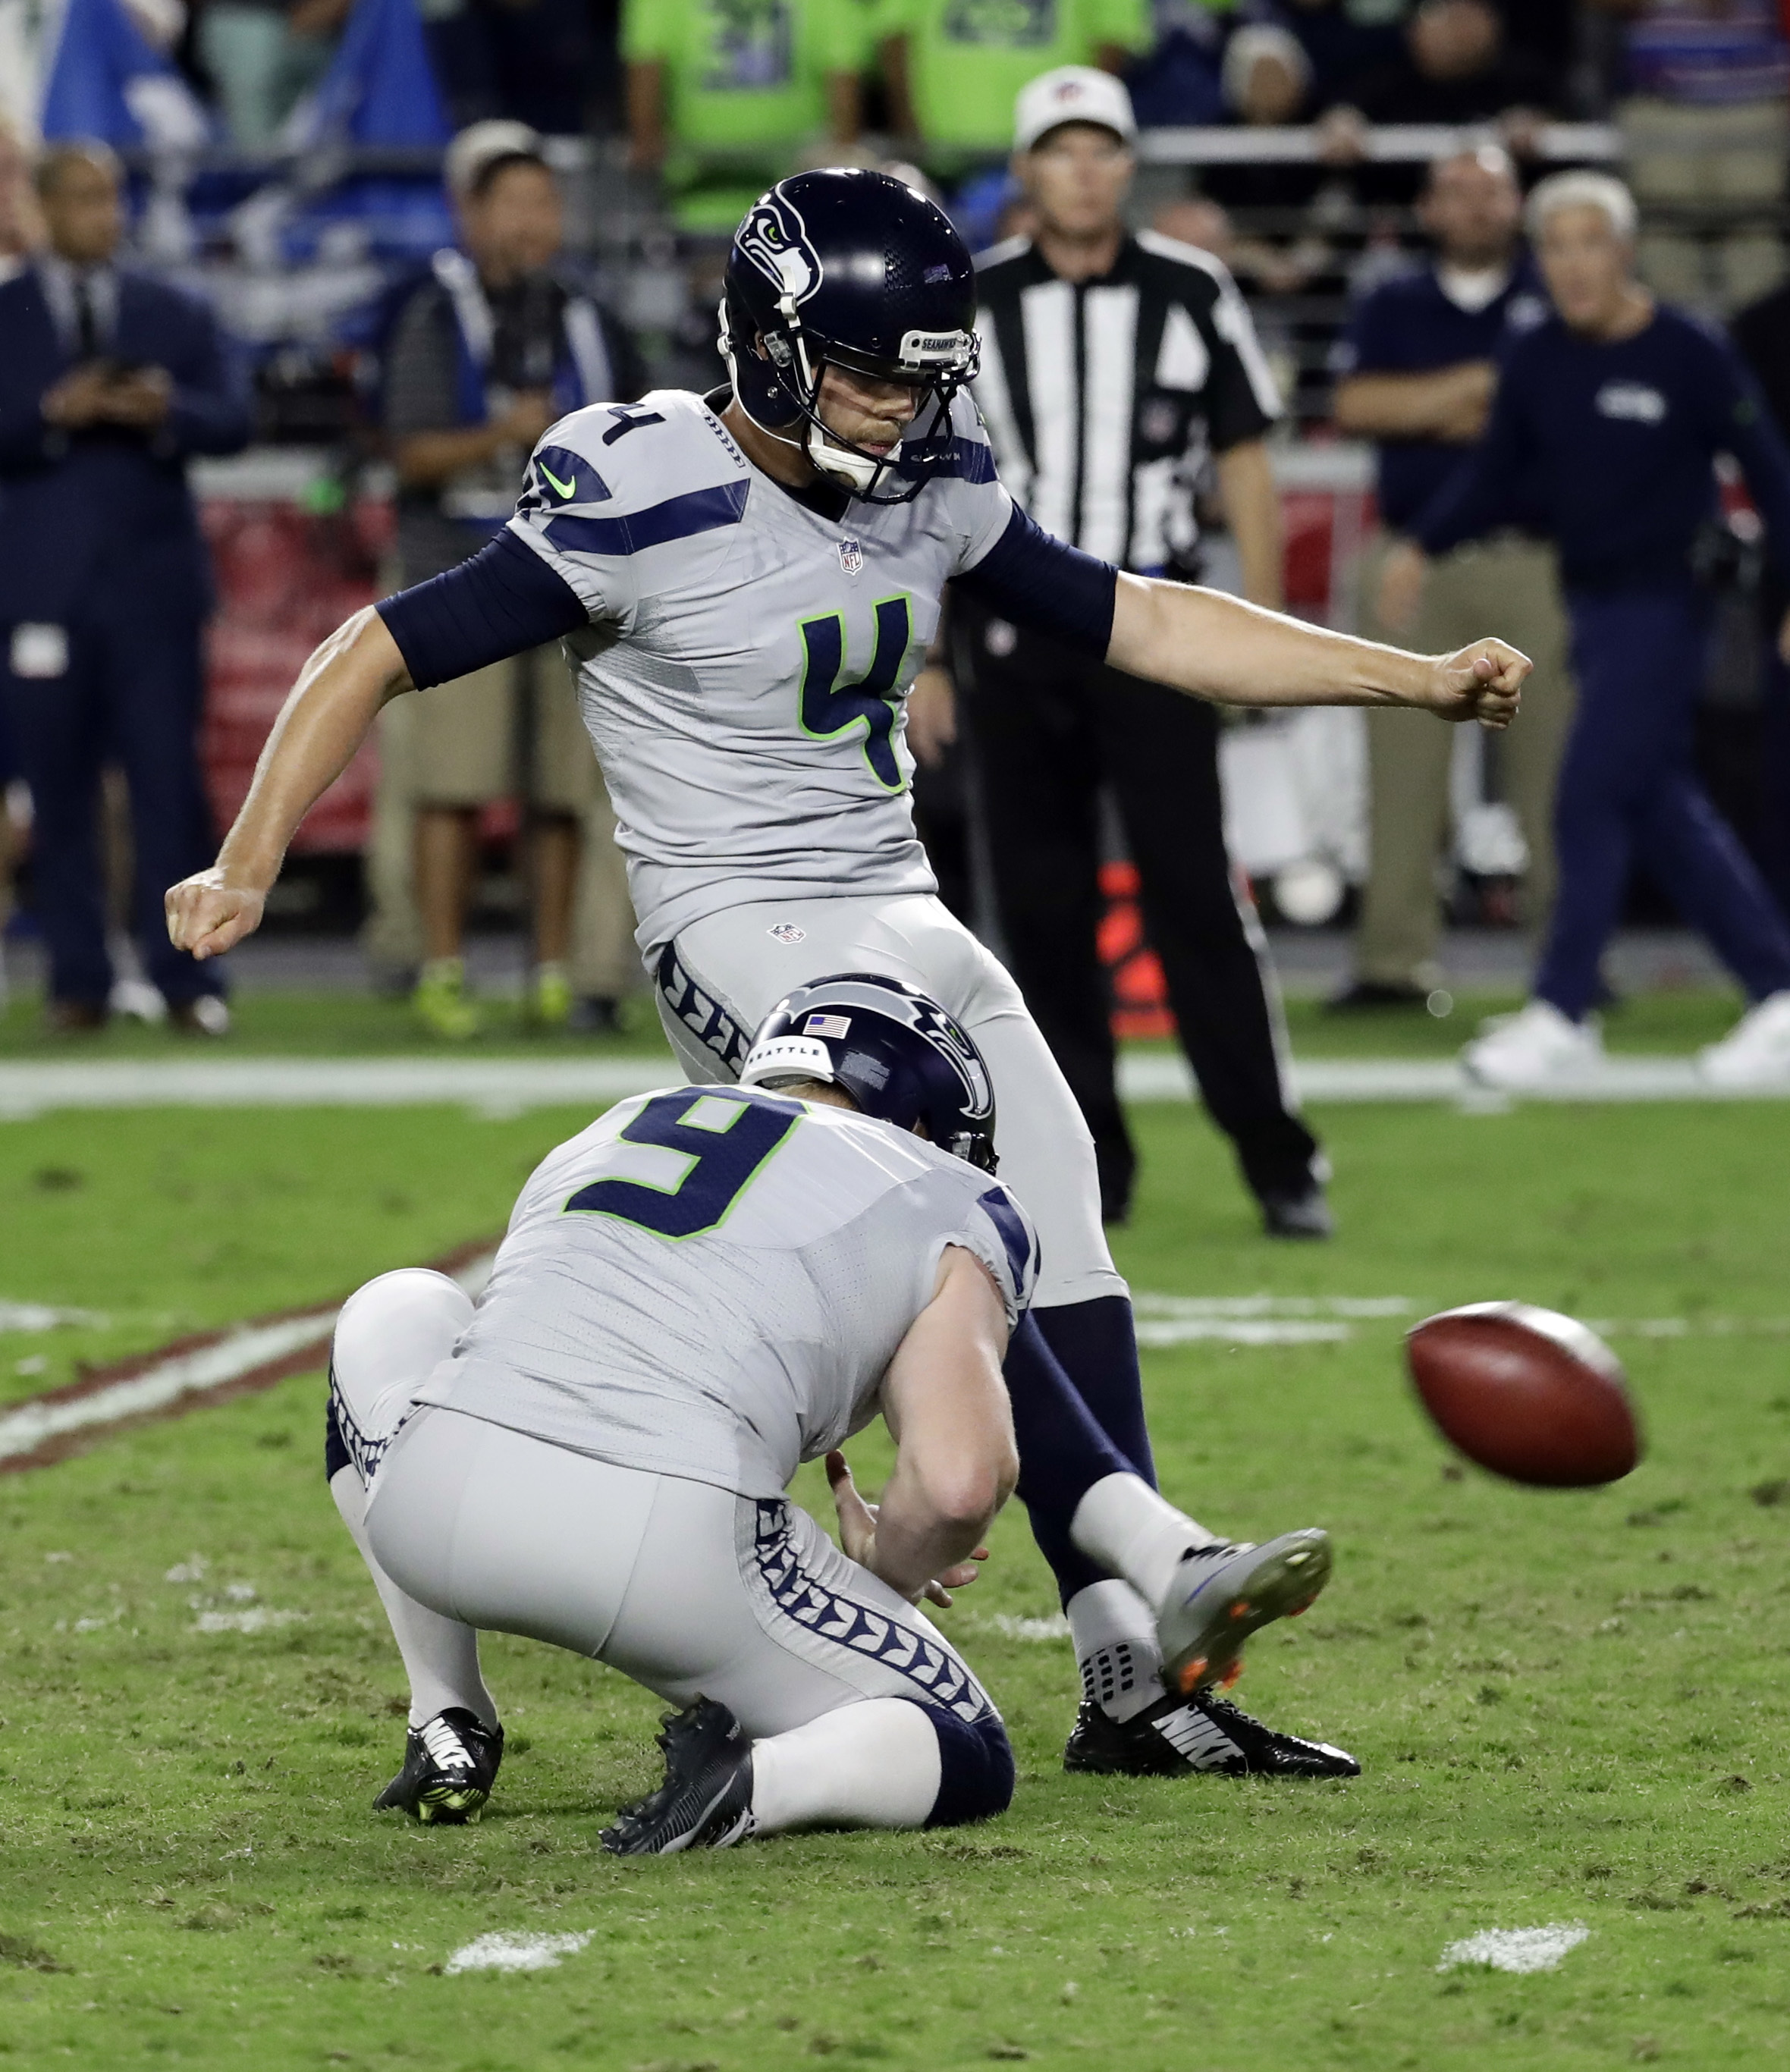 Seattle Seahawks kicker Stephen Hauschka (4) misses a game-winning field goal attempt as punter Jon Ryan (9) holds during overtime of an NFL football game against the Arizona Cardinals, Sunday, Oct. 23, 2016, in Glendale, Ariz. The game ended in overtime